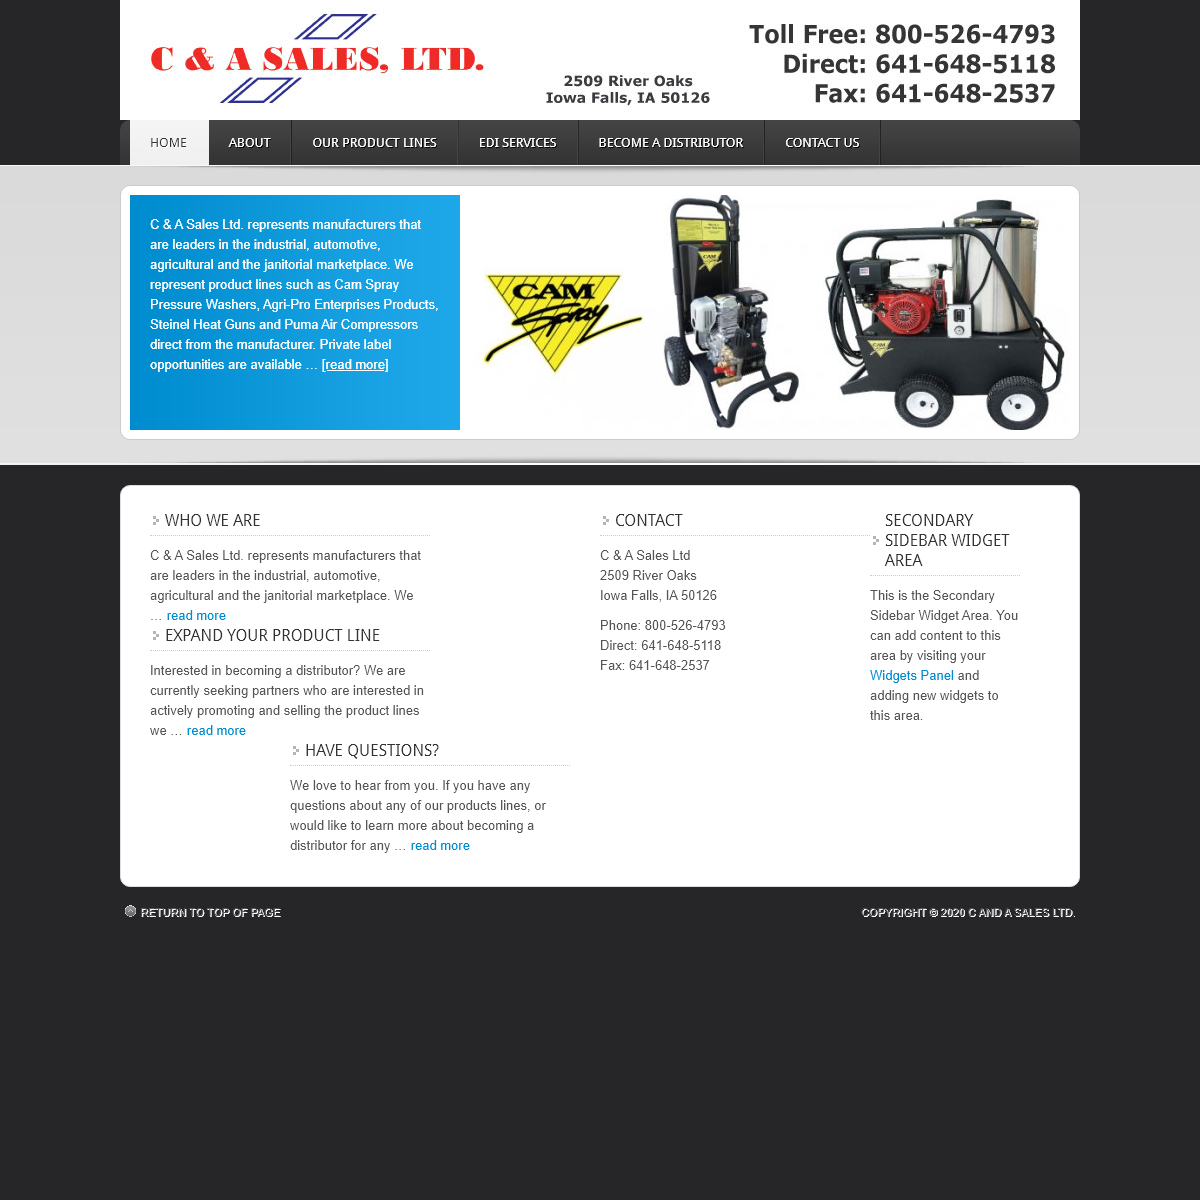 Manufacturers` Representatives of Industrial, Agricultural, Automotive, & Janitorial Products — We represent- Cam Spray, Agri-